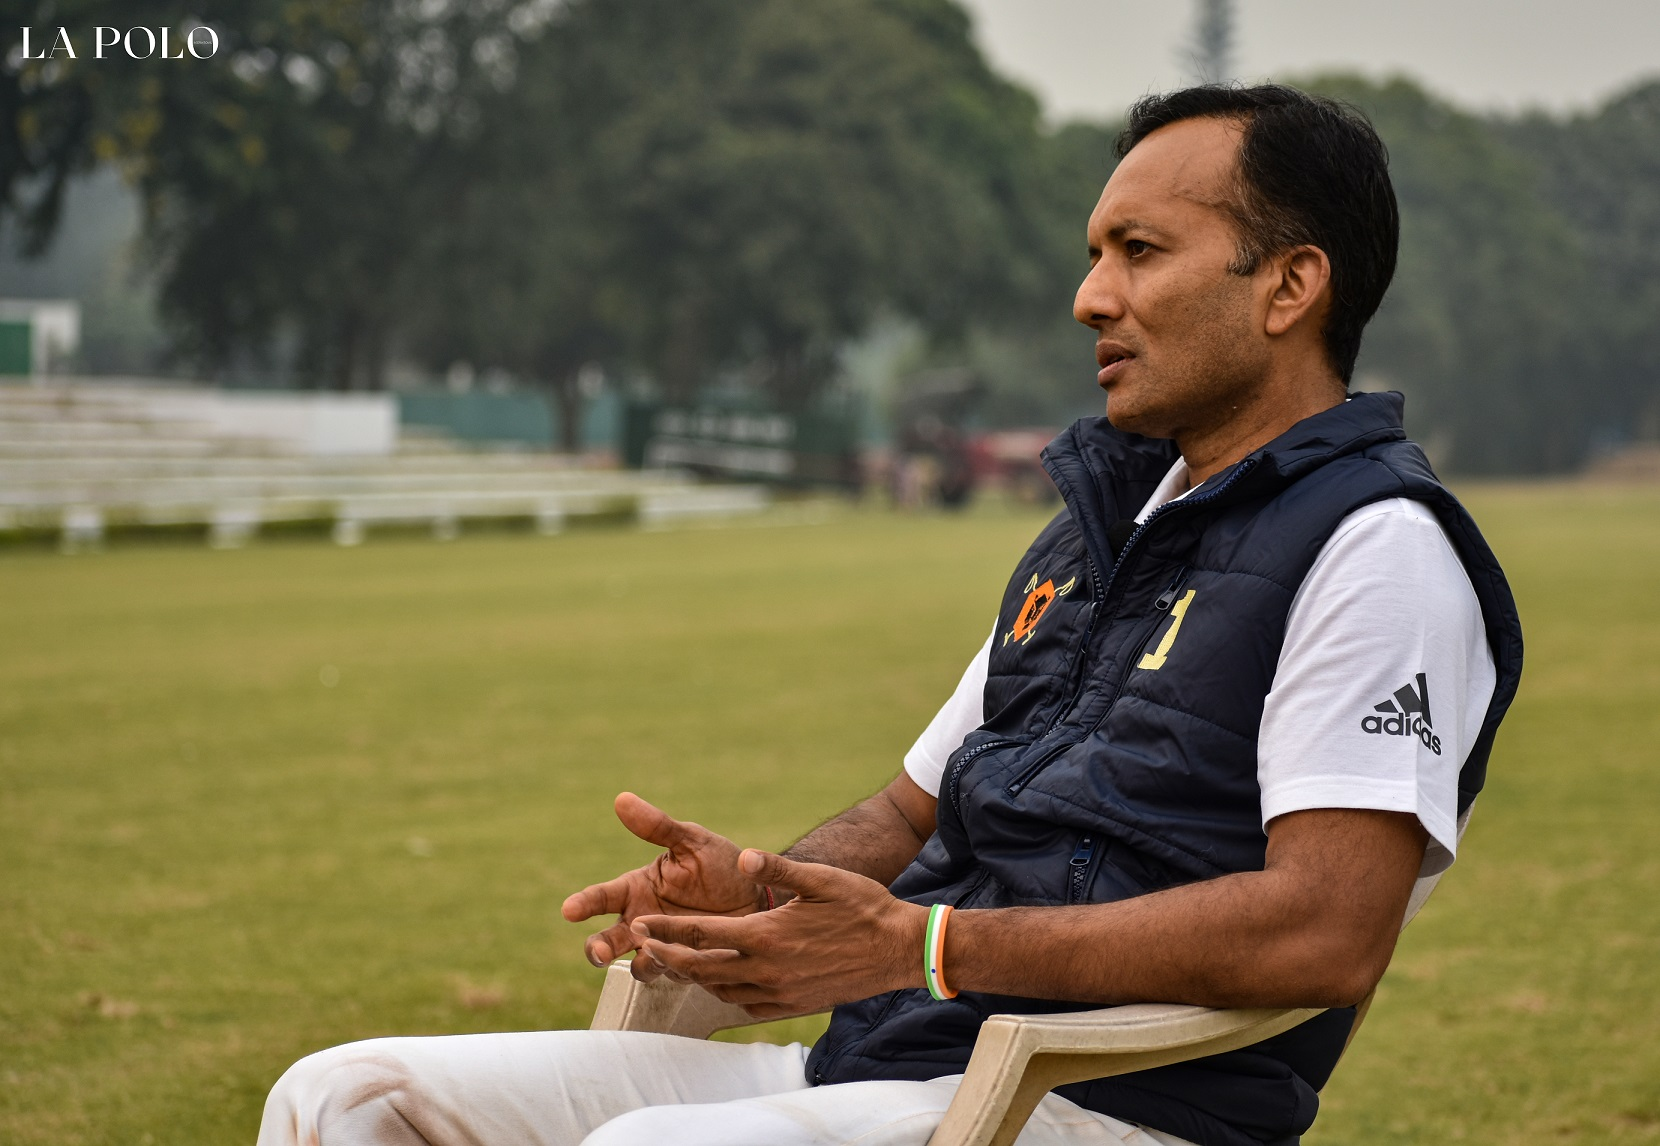 LA POLO IN CONVERSATION WITH NAVEEN JINDAL